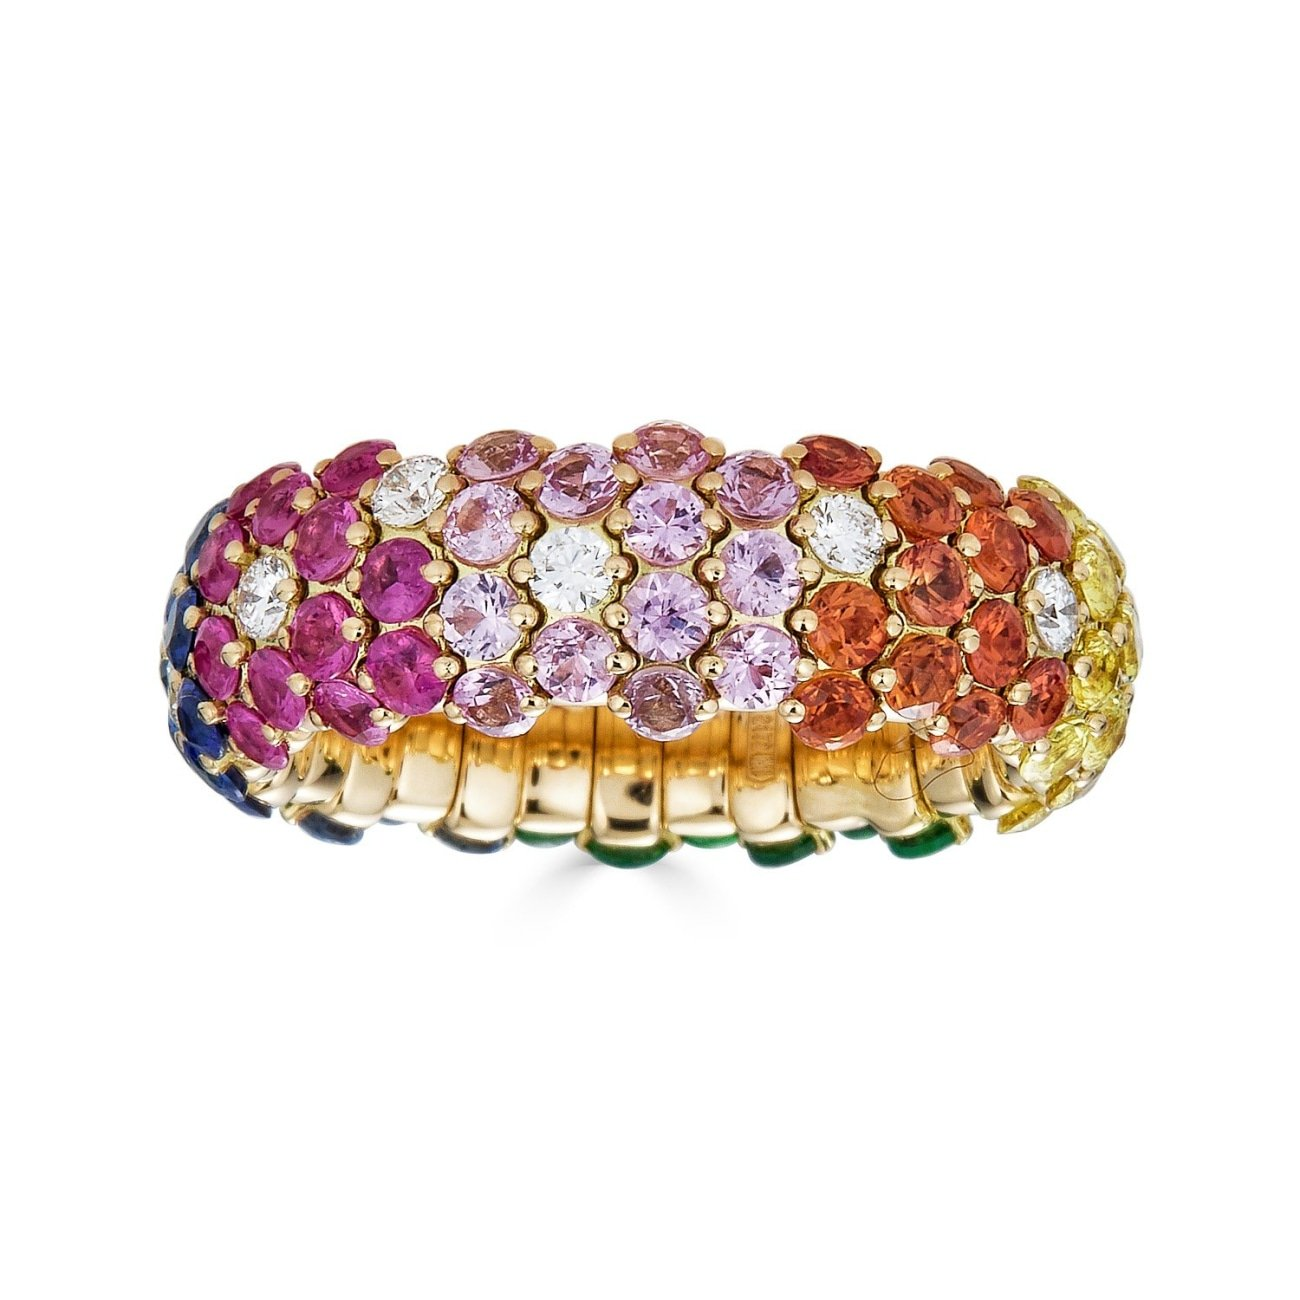 https://www.manfredijewels.com/collections/jewelry/products/rainbow-stretch-ring-in-18kt-yellow-gold